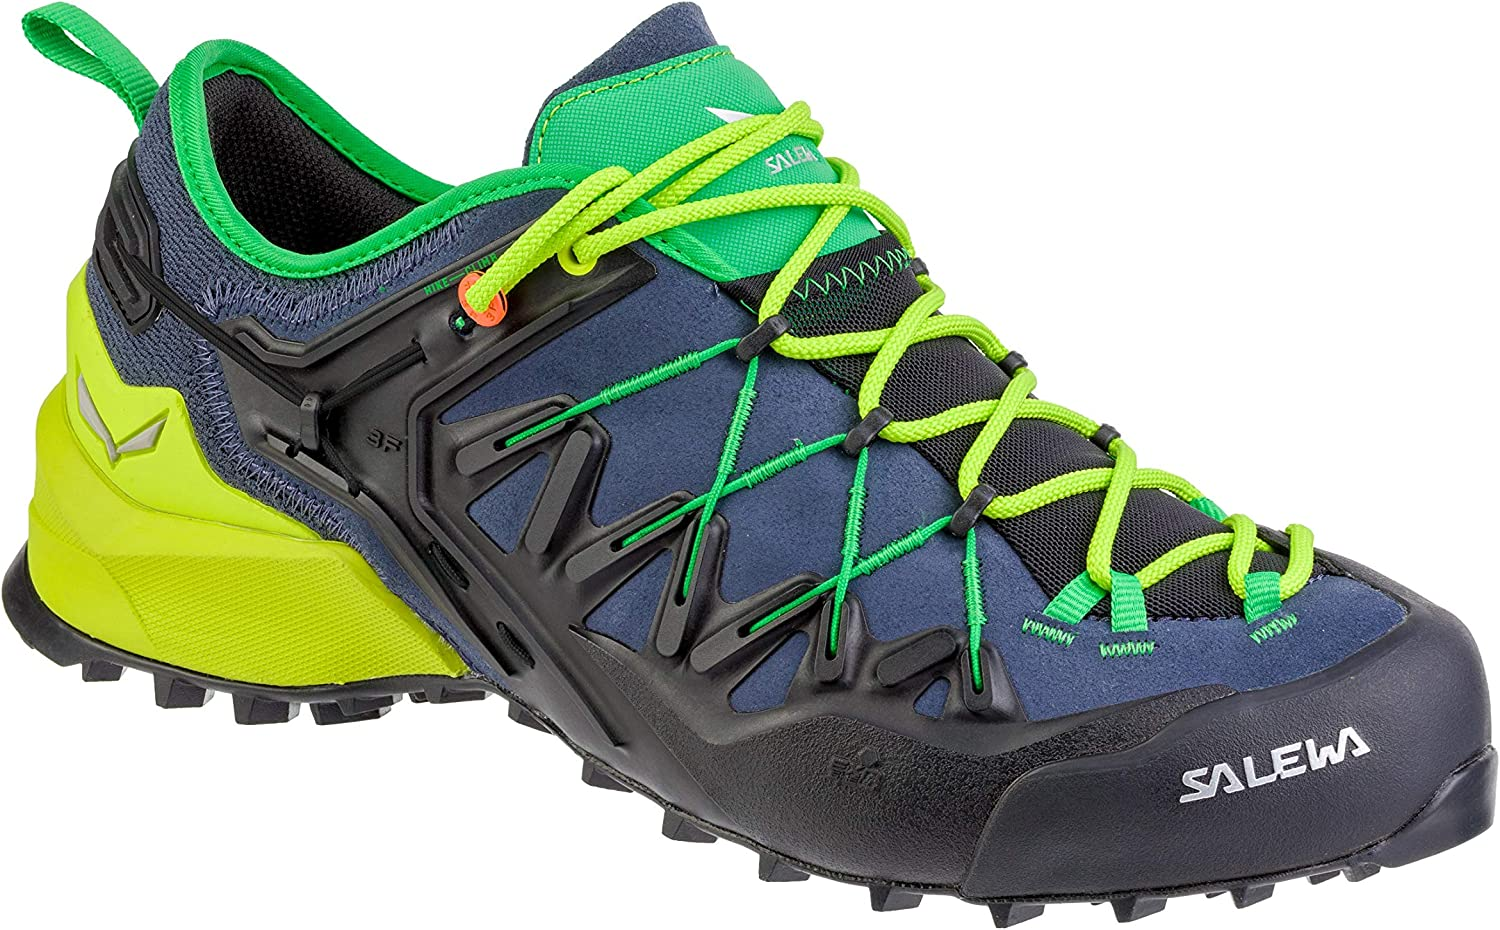 Salewa Wildfire Edge Climbing shoes - Men's, Ombre bluee Fluo Yellow, 11, 00-0000061346-3840-11